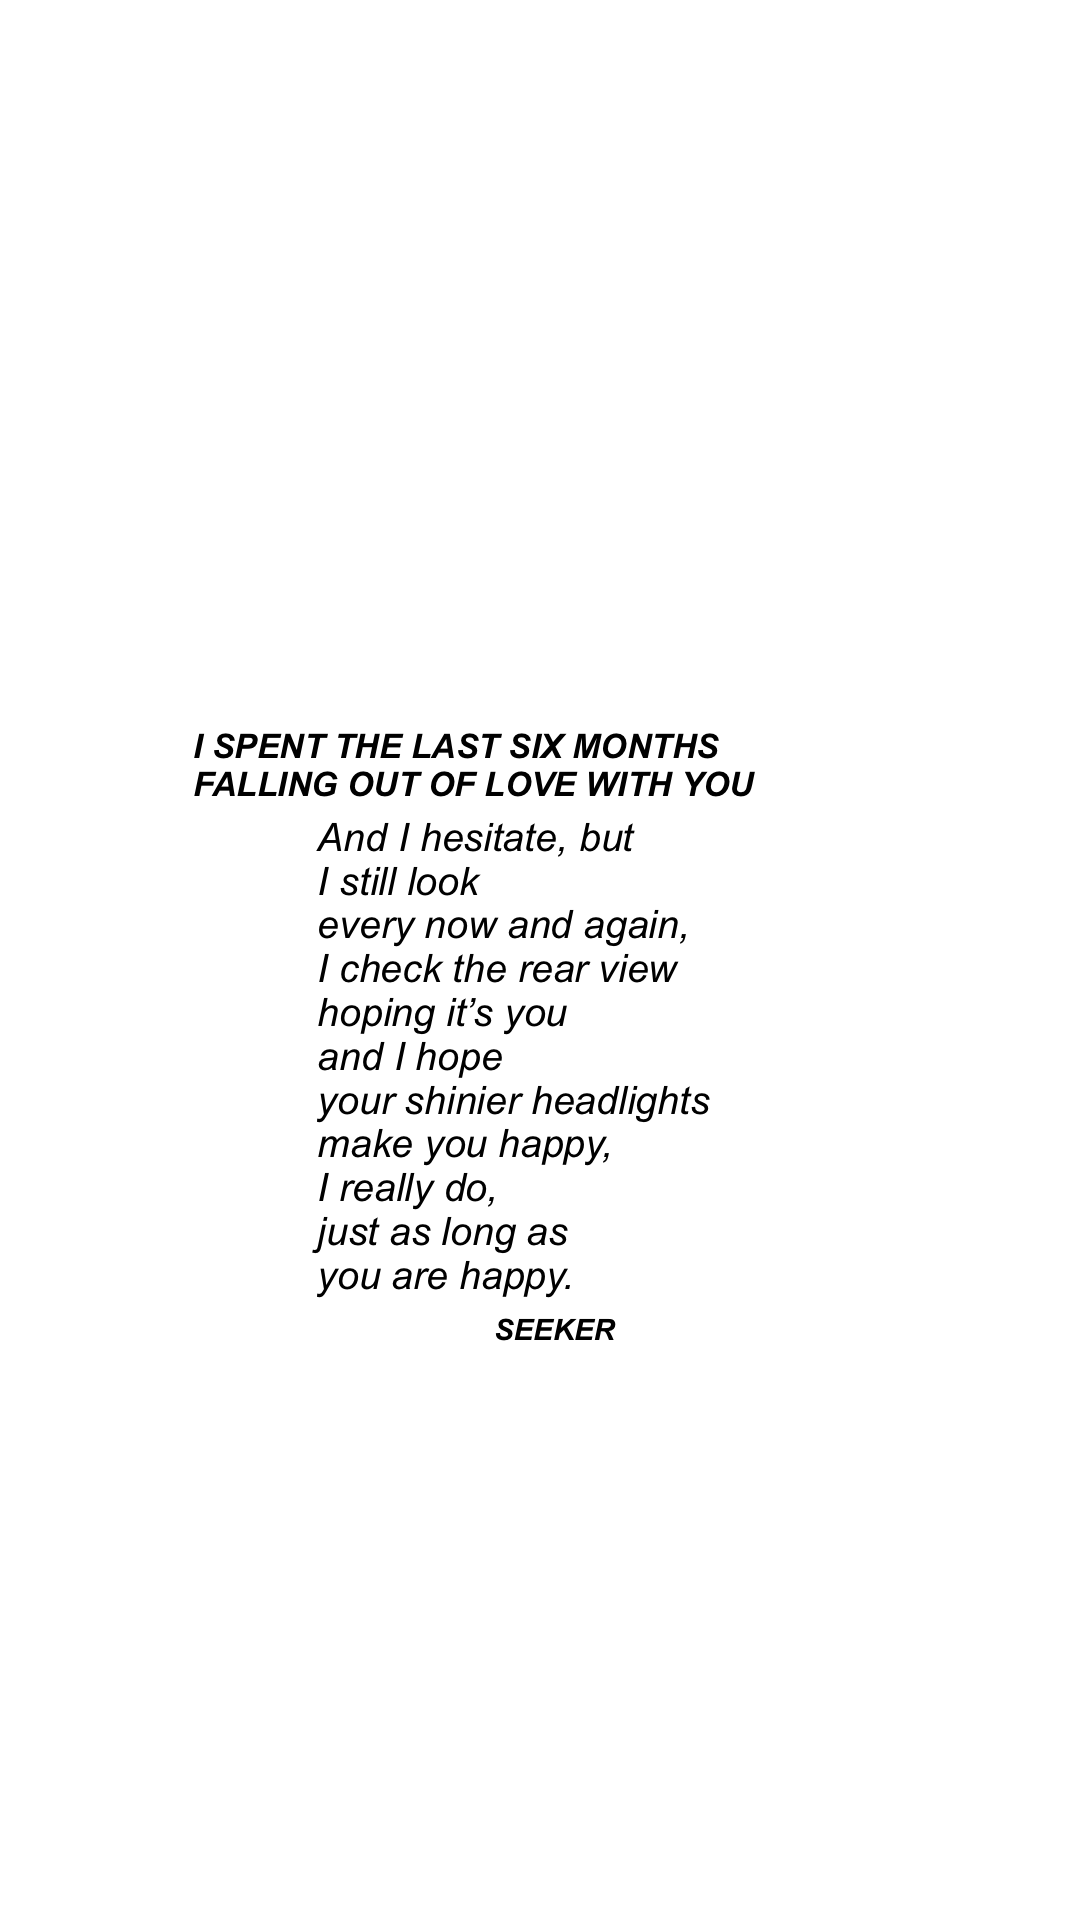 how do you know if you fell out of love